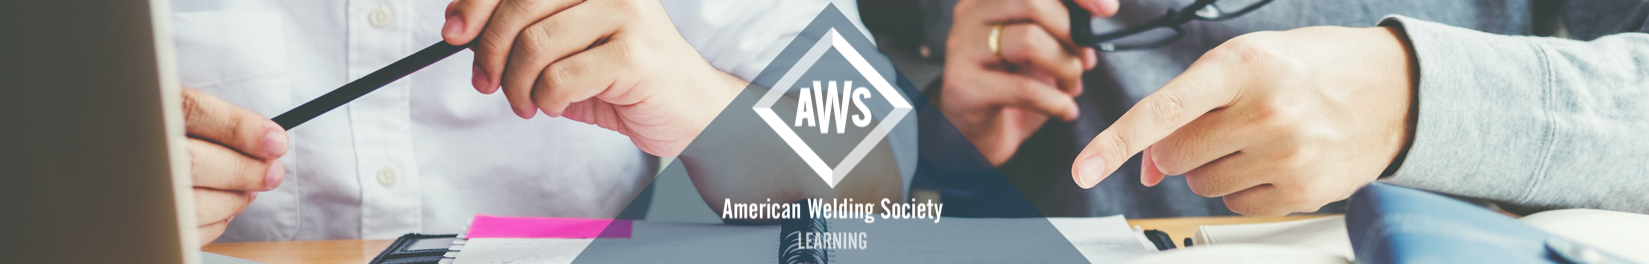 Develop & Teach at the American Welding Society